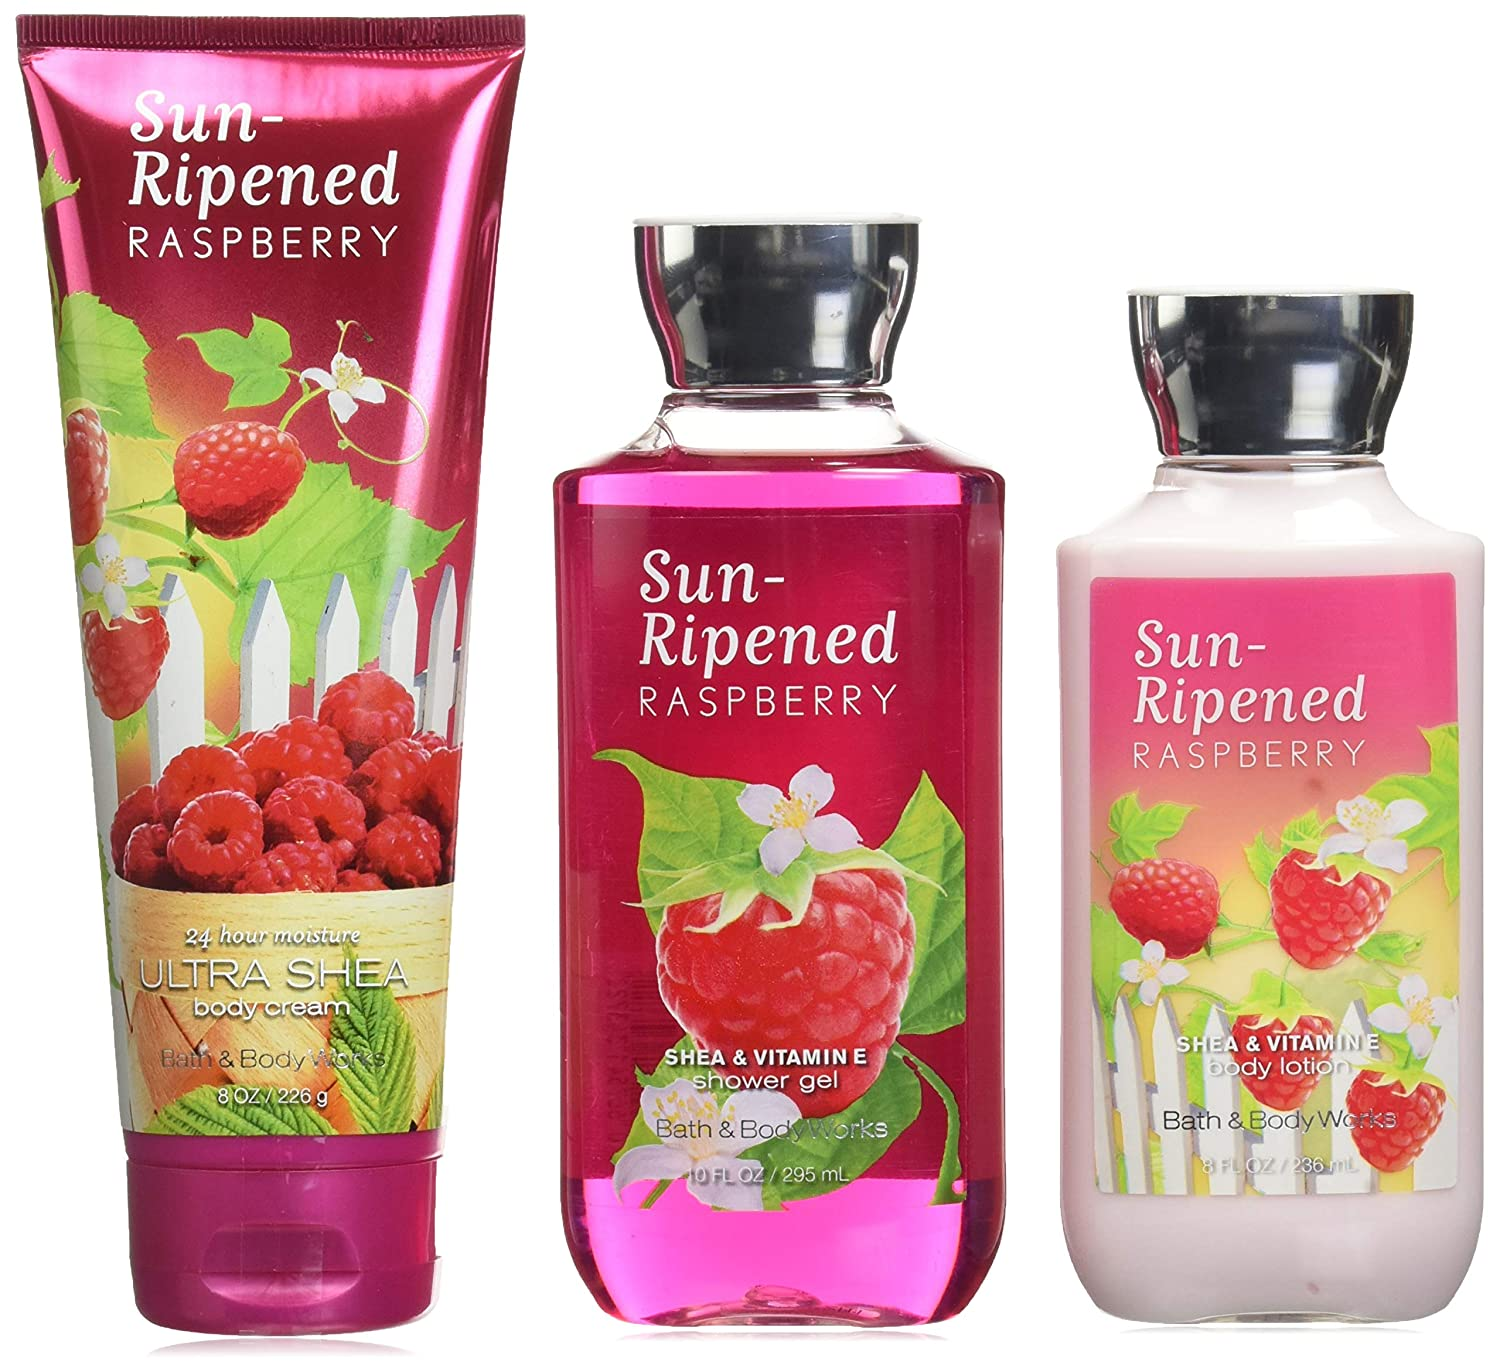 Bath & Body Works Sun Ripened Raspberry Body Cream, Shower Gel and Body Lotion Gift Set